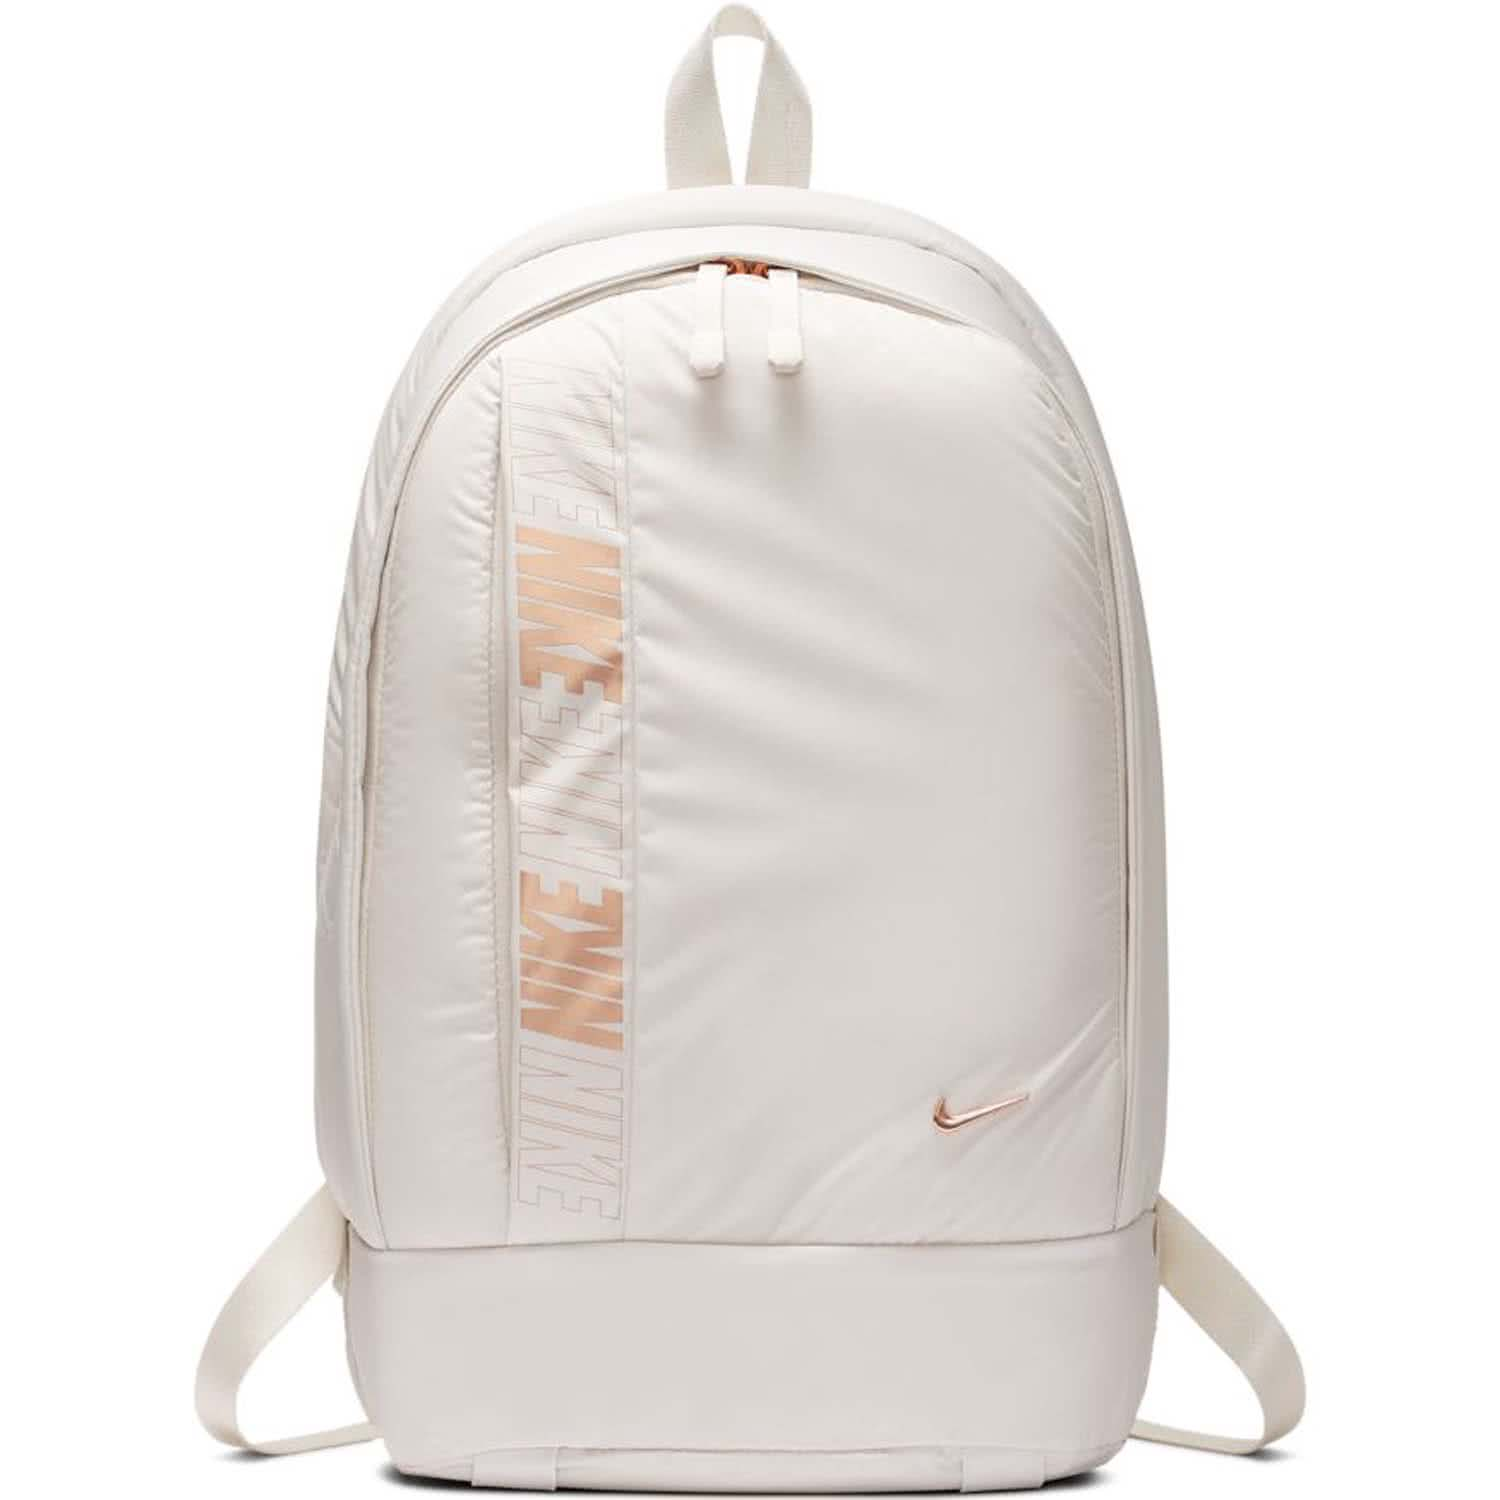 Nike Damen Rucksack Legend Backpack - Solid BA5439 | cortexpower.de